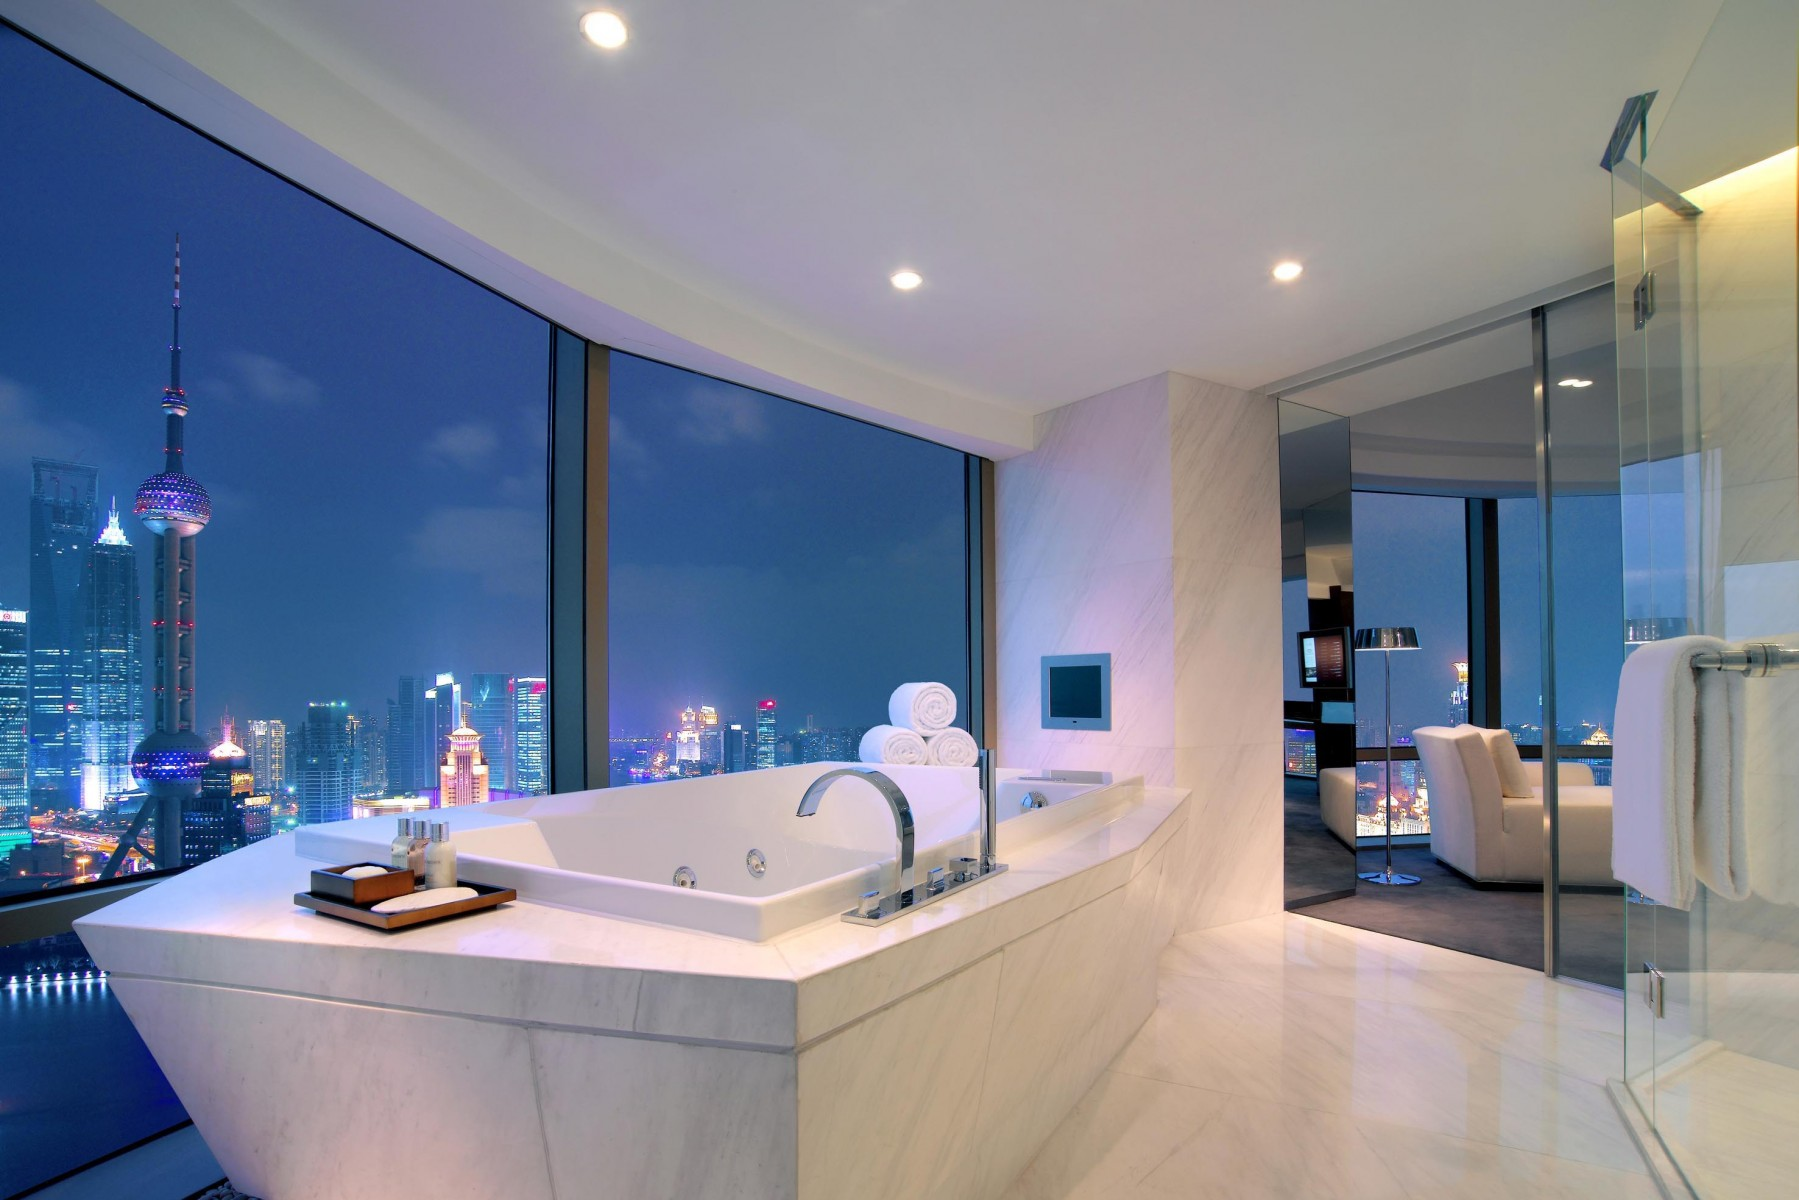 Beautiful Bathrooms Soak Up The View  8 Beautiful Bathrooms You Won't Be Able To Resist